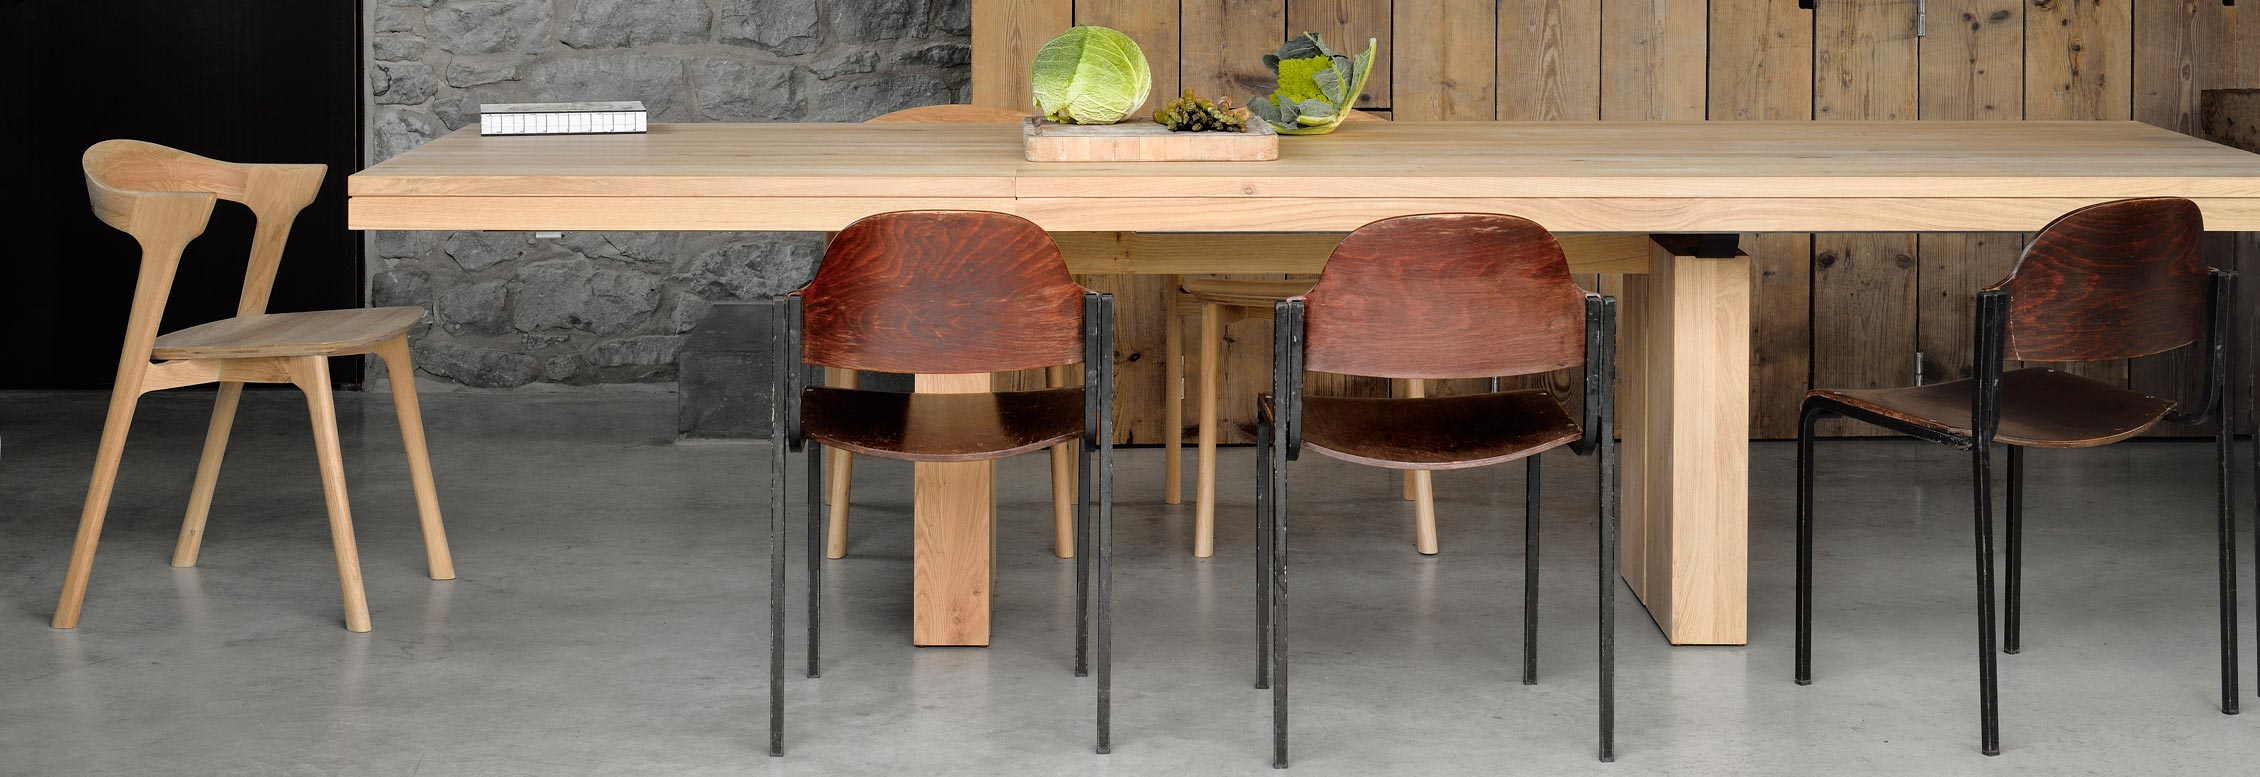 Double Dining table by Ethnicraft